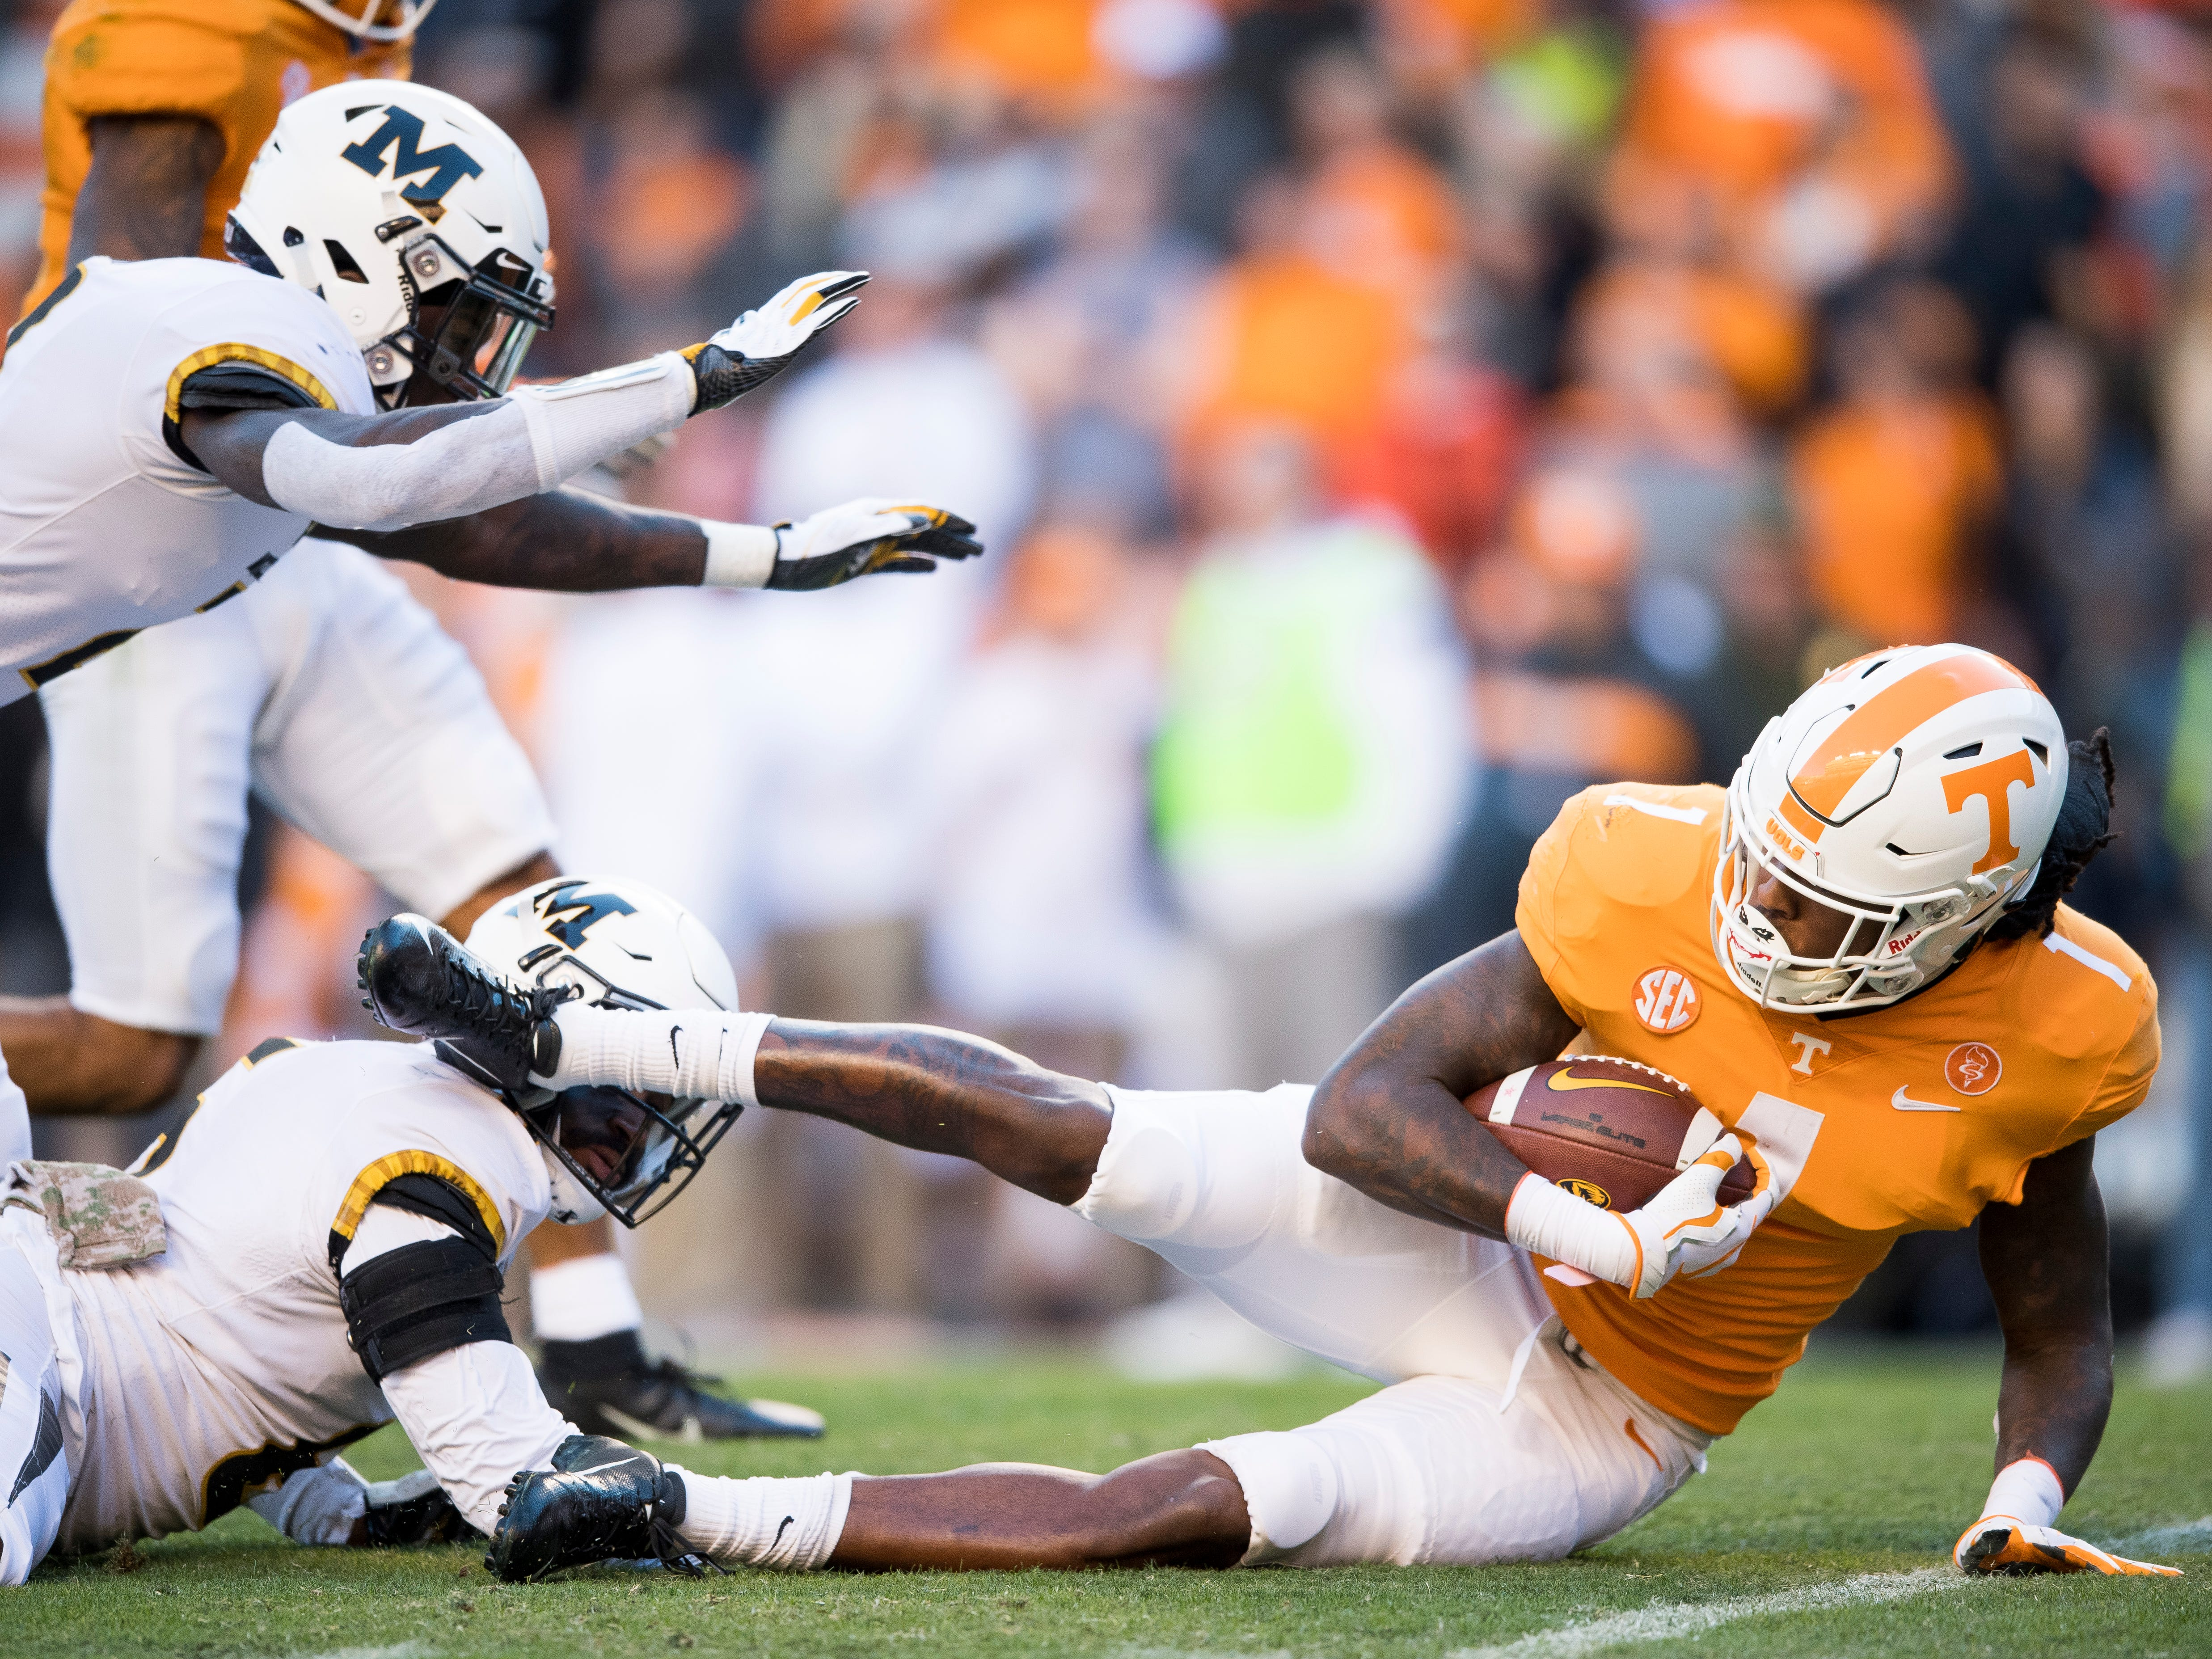 Tennessee wide receiver Marquez Callaway (1) is taken down during a punt return during the Tennessee Volunteers game against the Missouri Tigers in Neyland Stadium on Saturday, November 17, 2018. Missouri linebacker Tavon Ross (6) was rejected for targeting on Callaway.